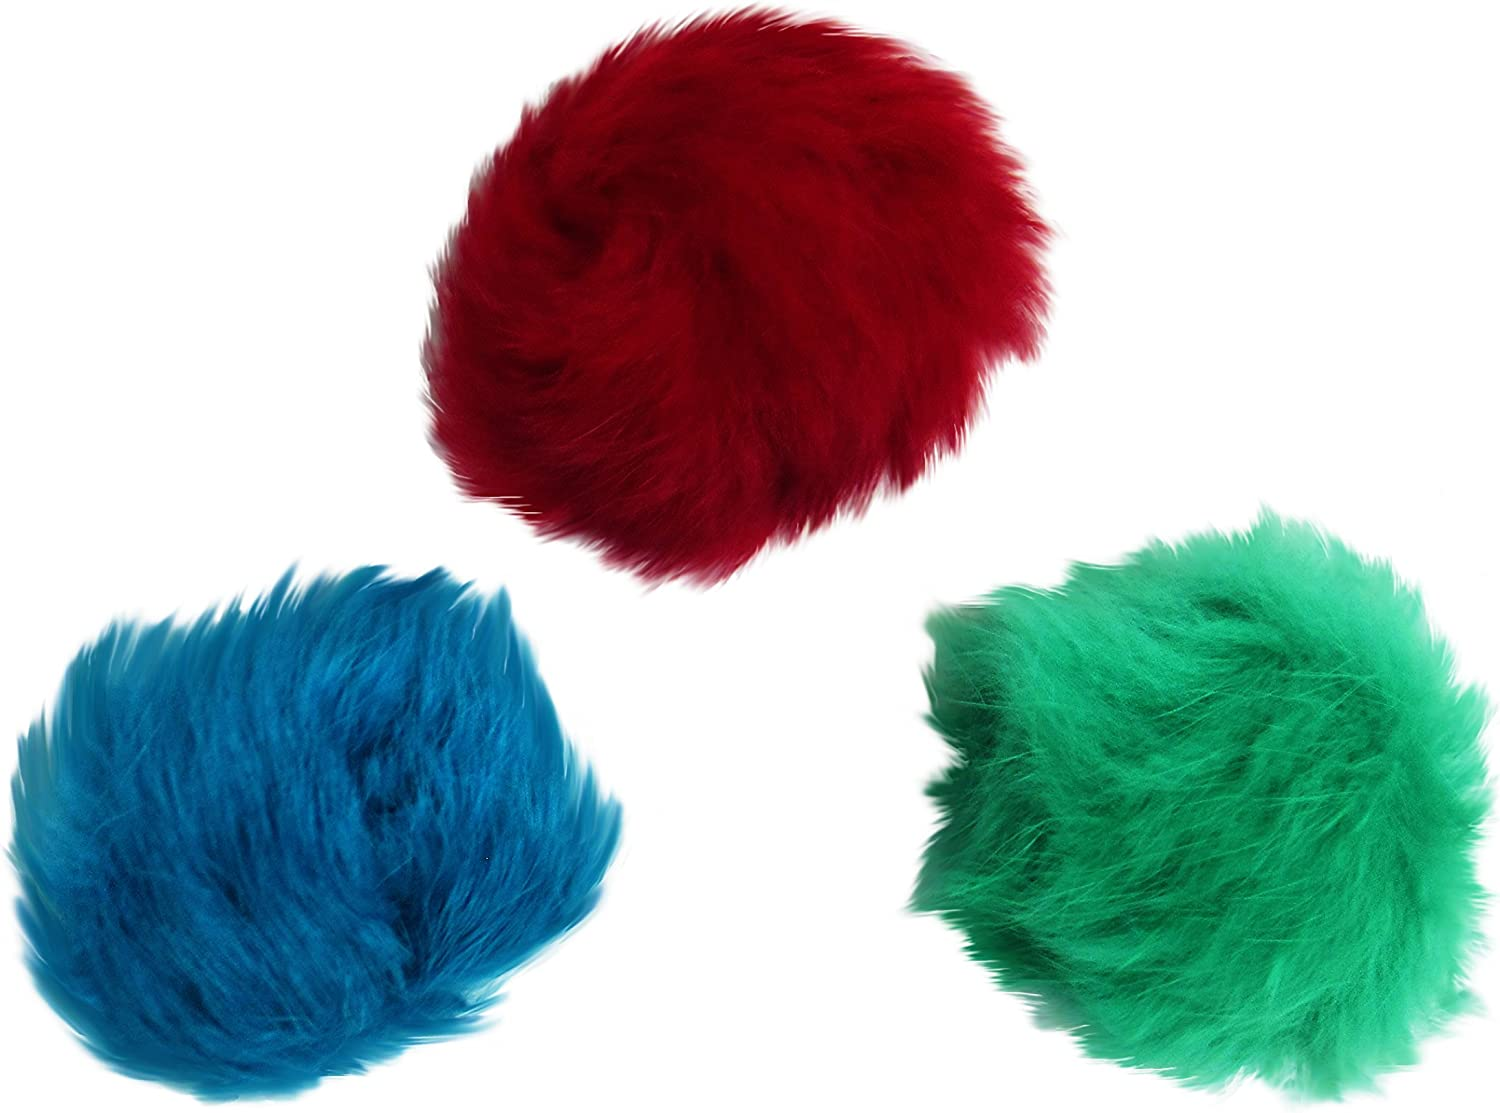 3 Genuine Free Shipping Count of Bat Arounds: Fur Da Cat from Bird Toy Max 52% OFF Ball